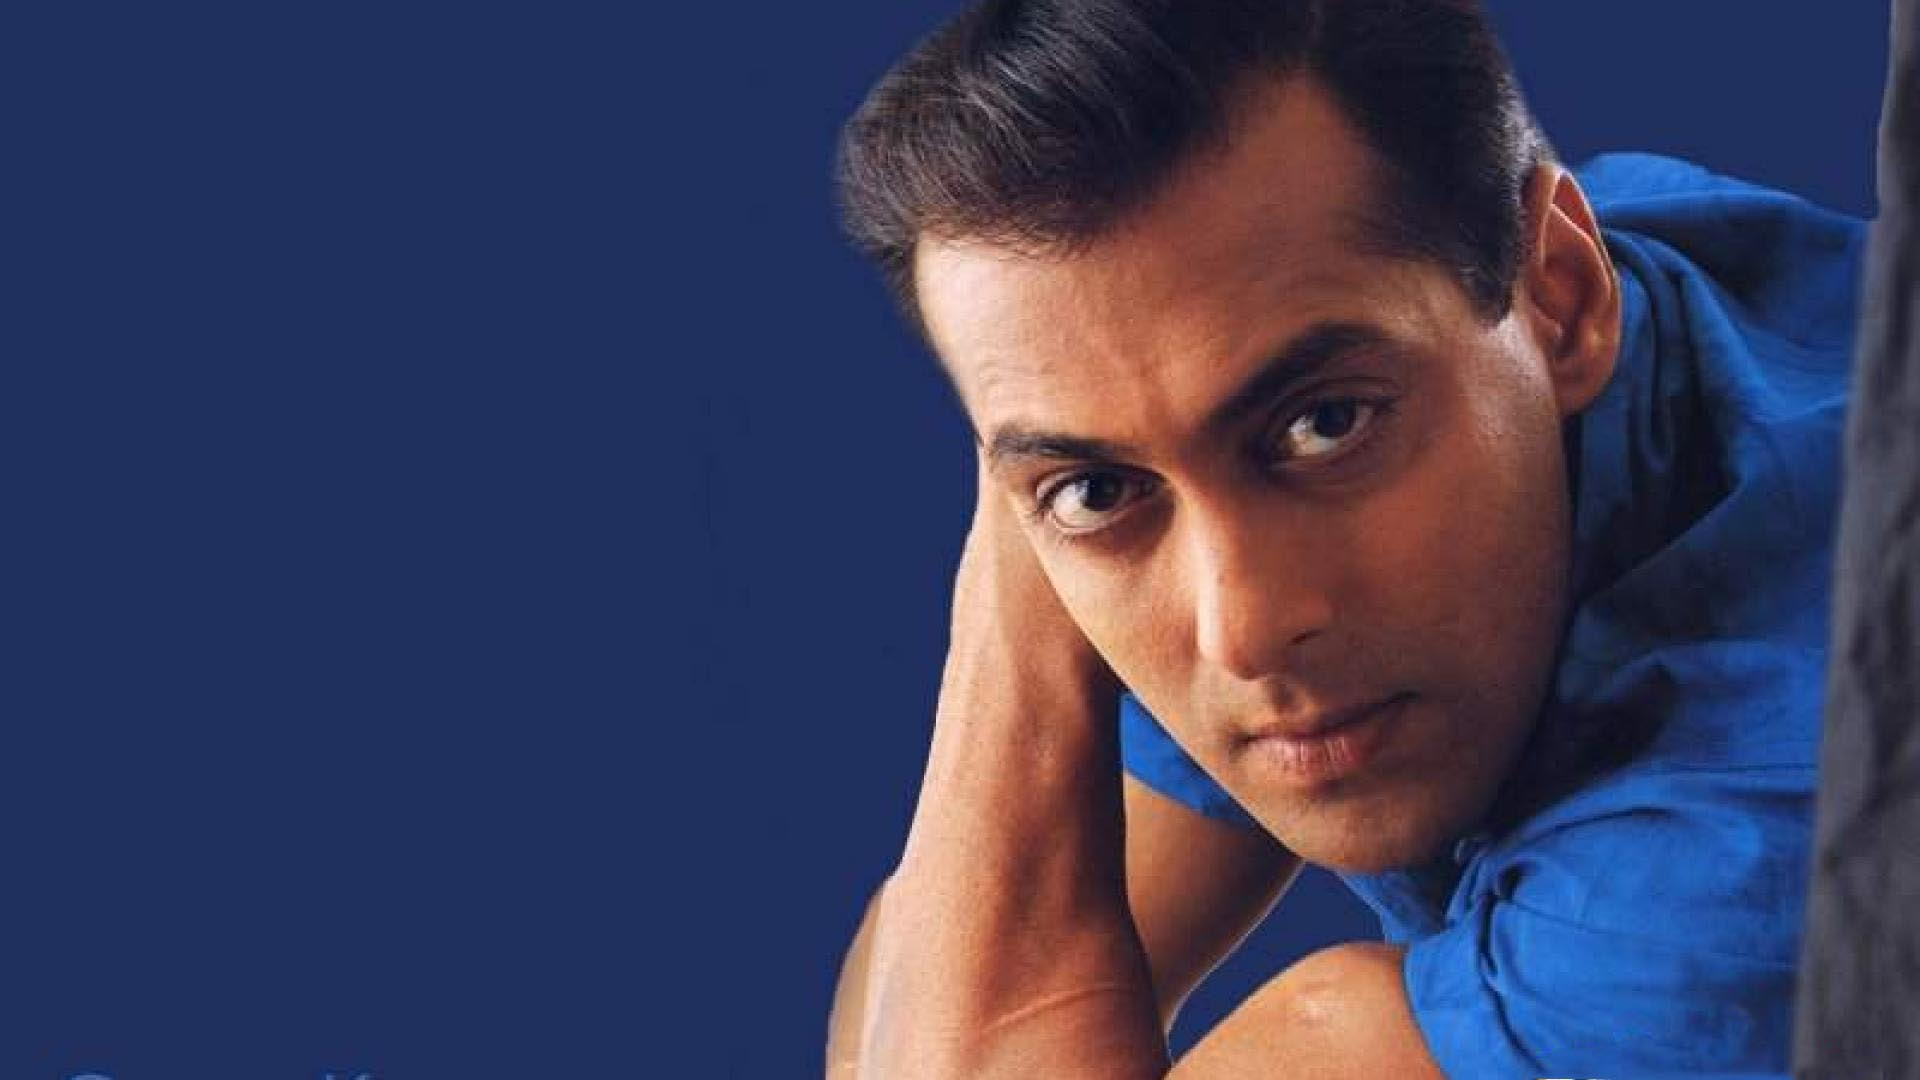 Download free salman khan theme for symbian os 9. 1 / s60 3rd edition.